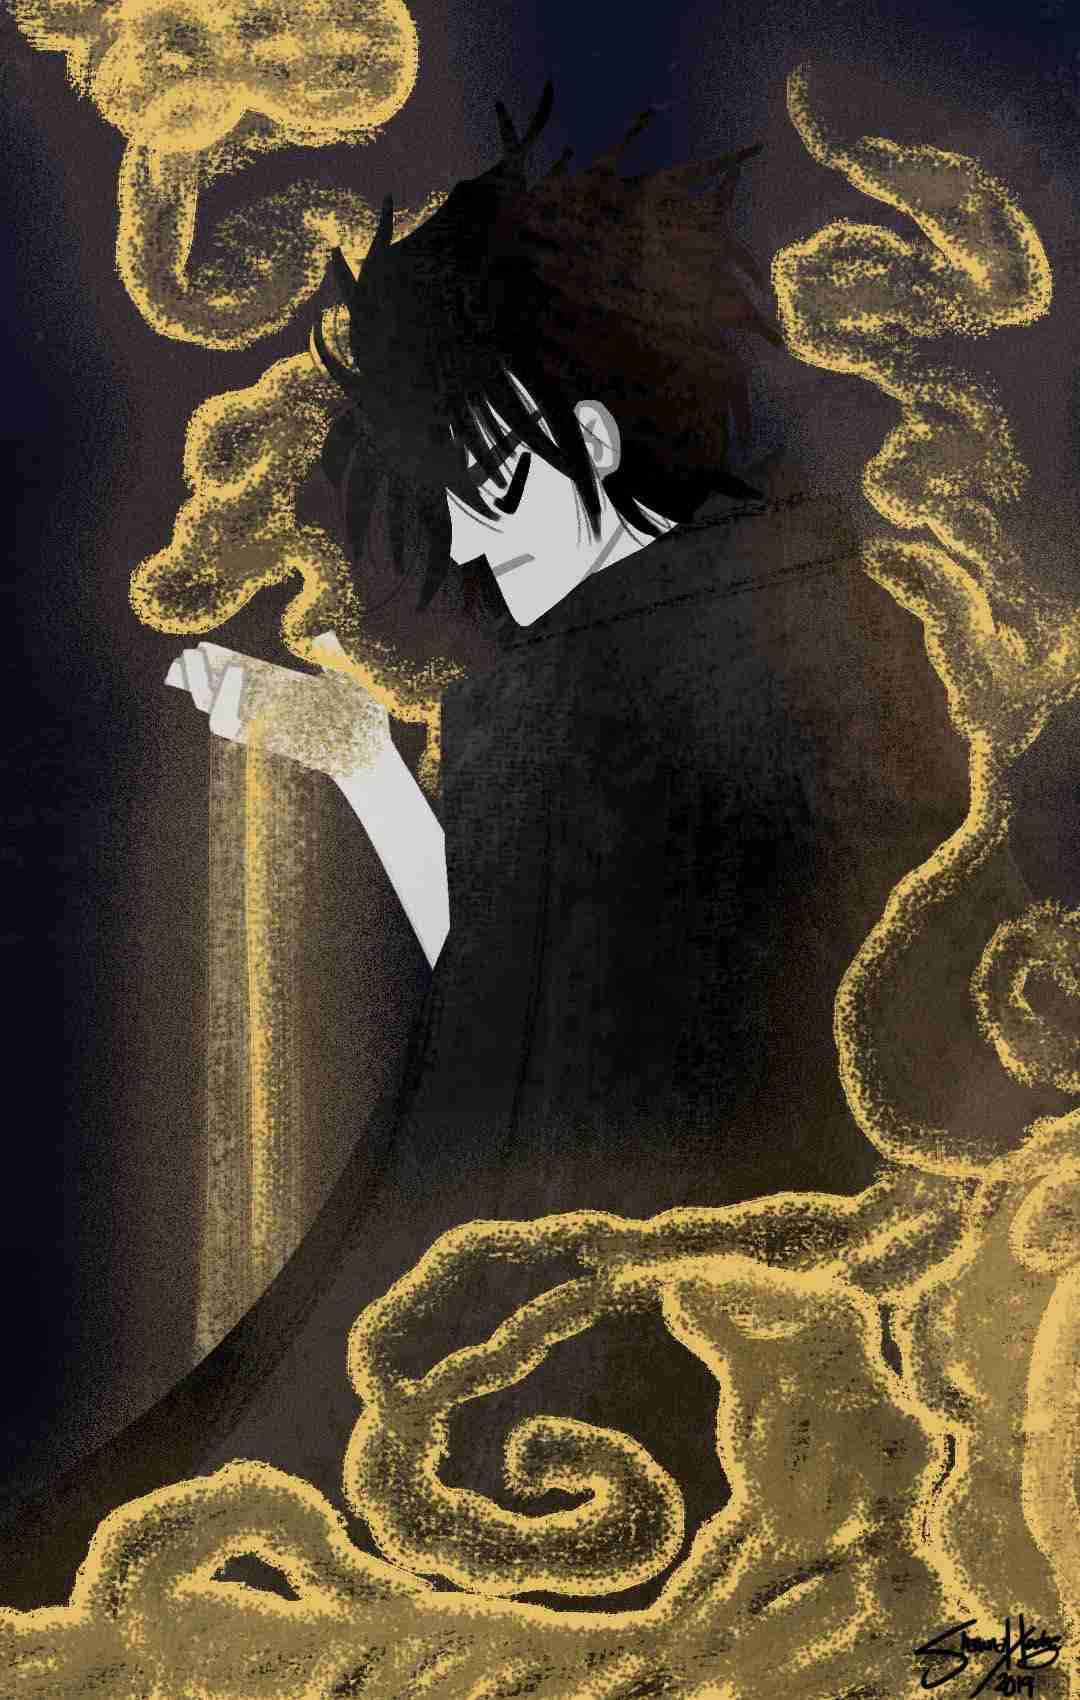 The first issue of The Sandman was released in 1989.